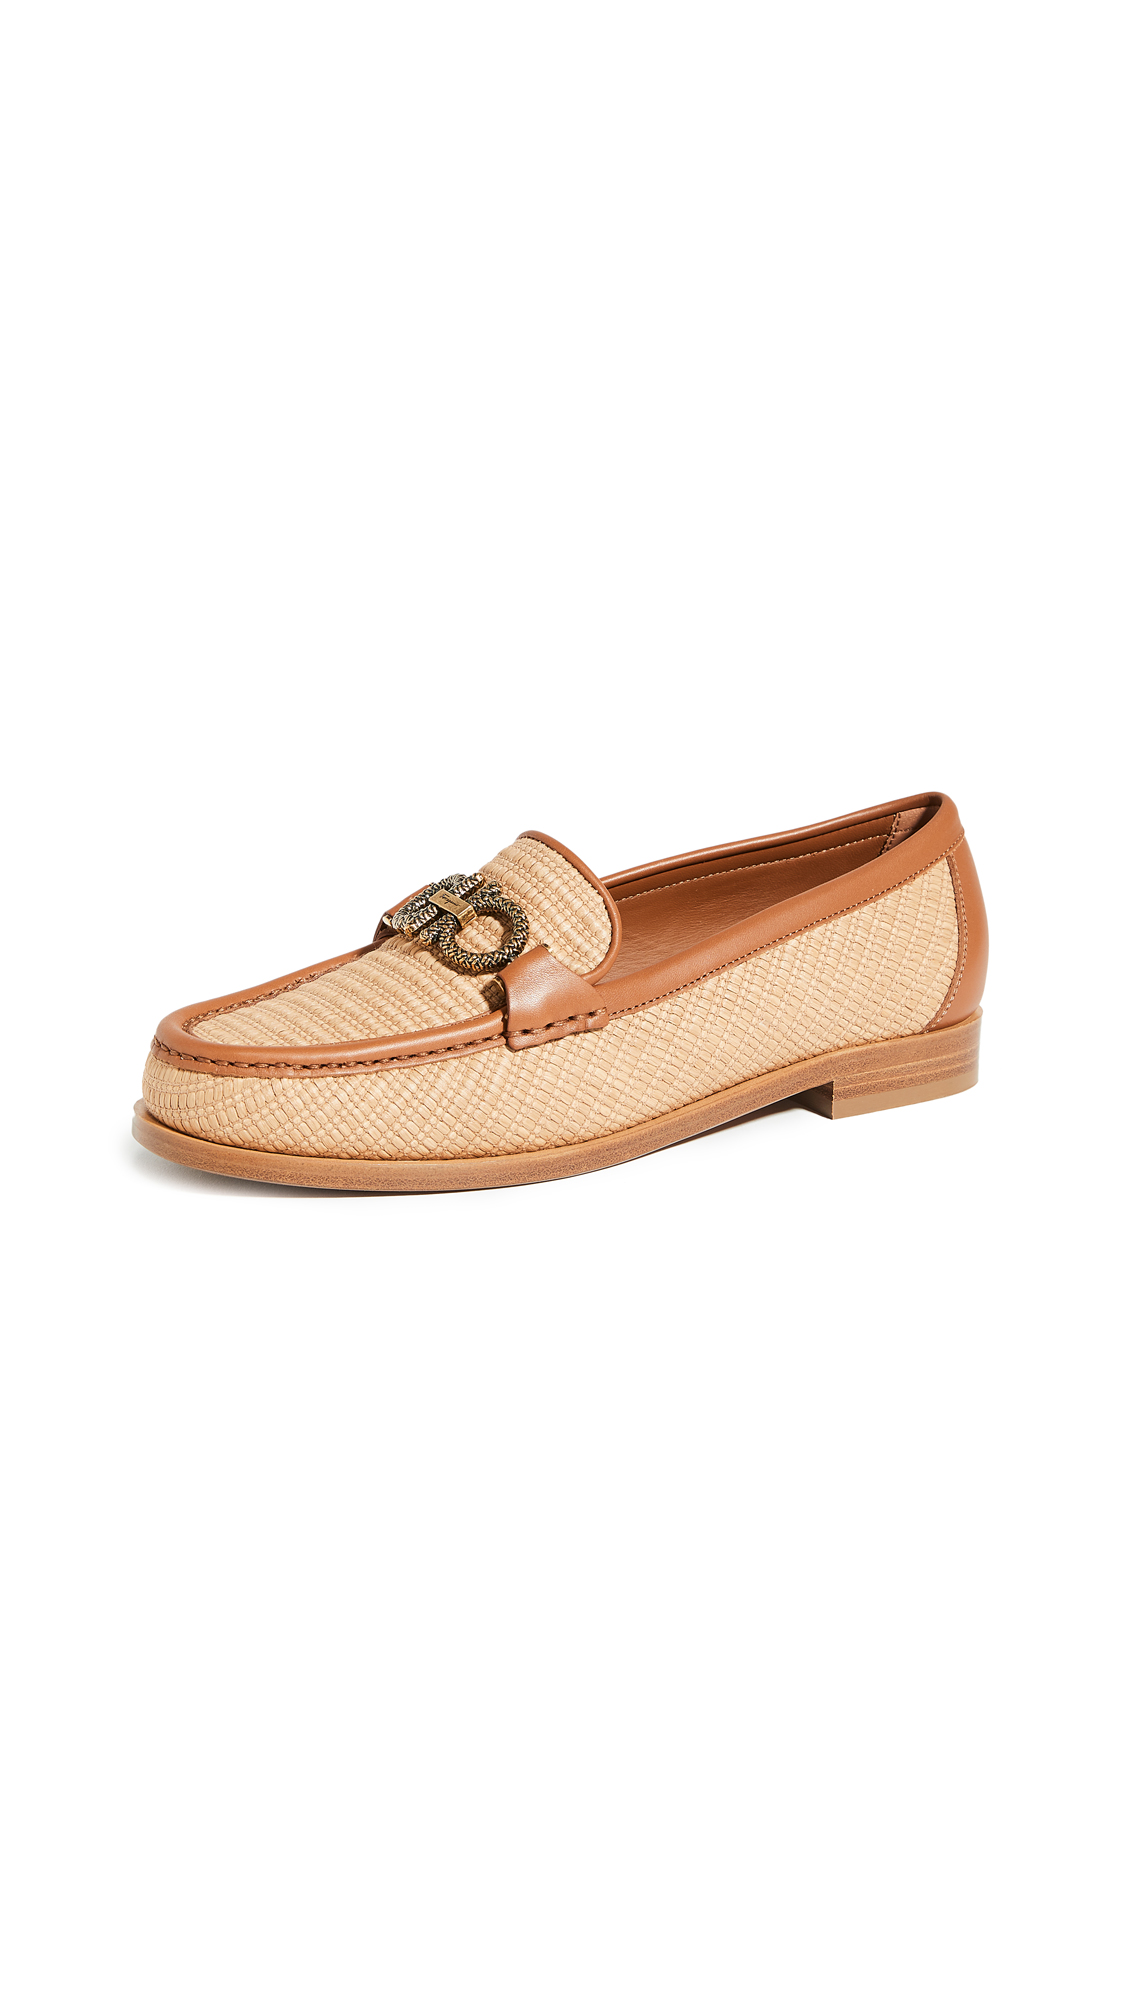 Salvatore Ferragamo Rolo T Loafers – 40% Off Sale